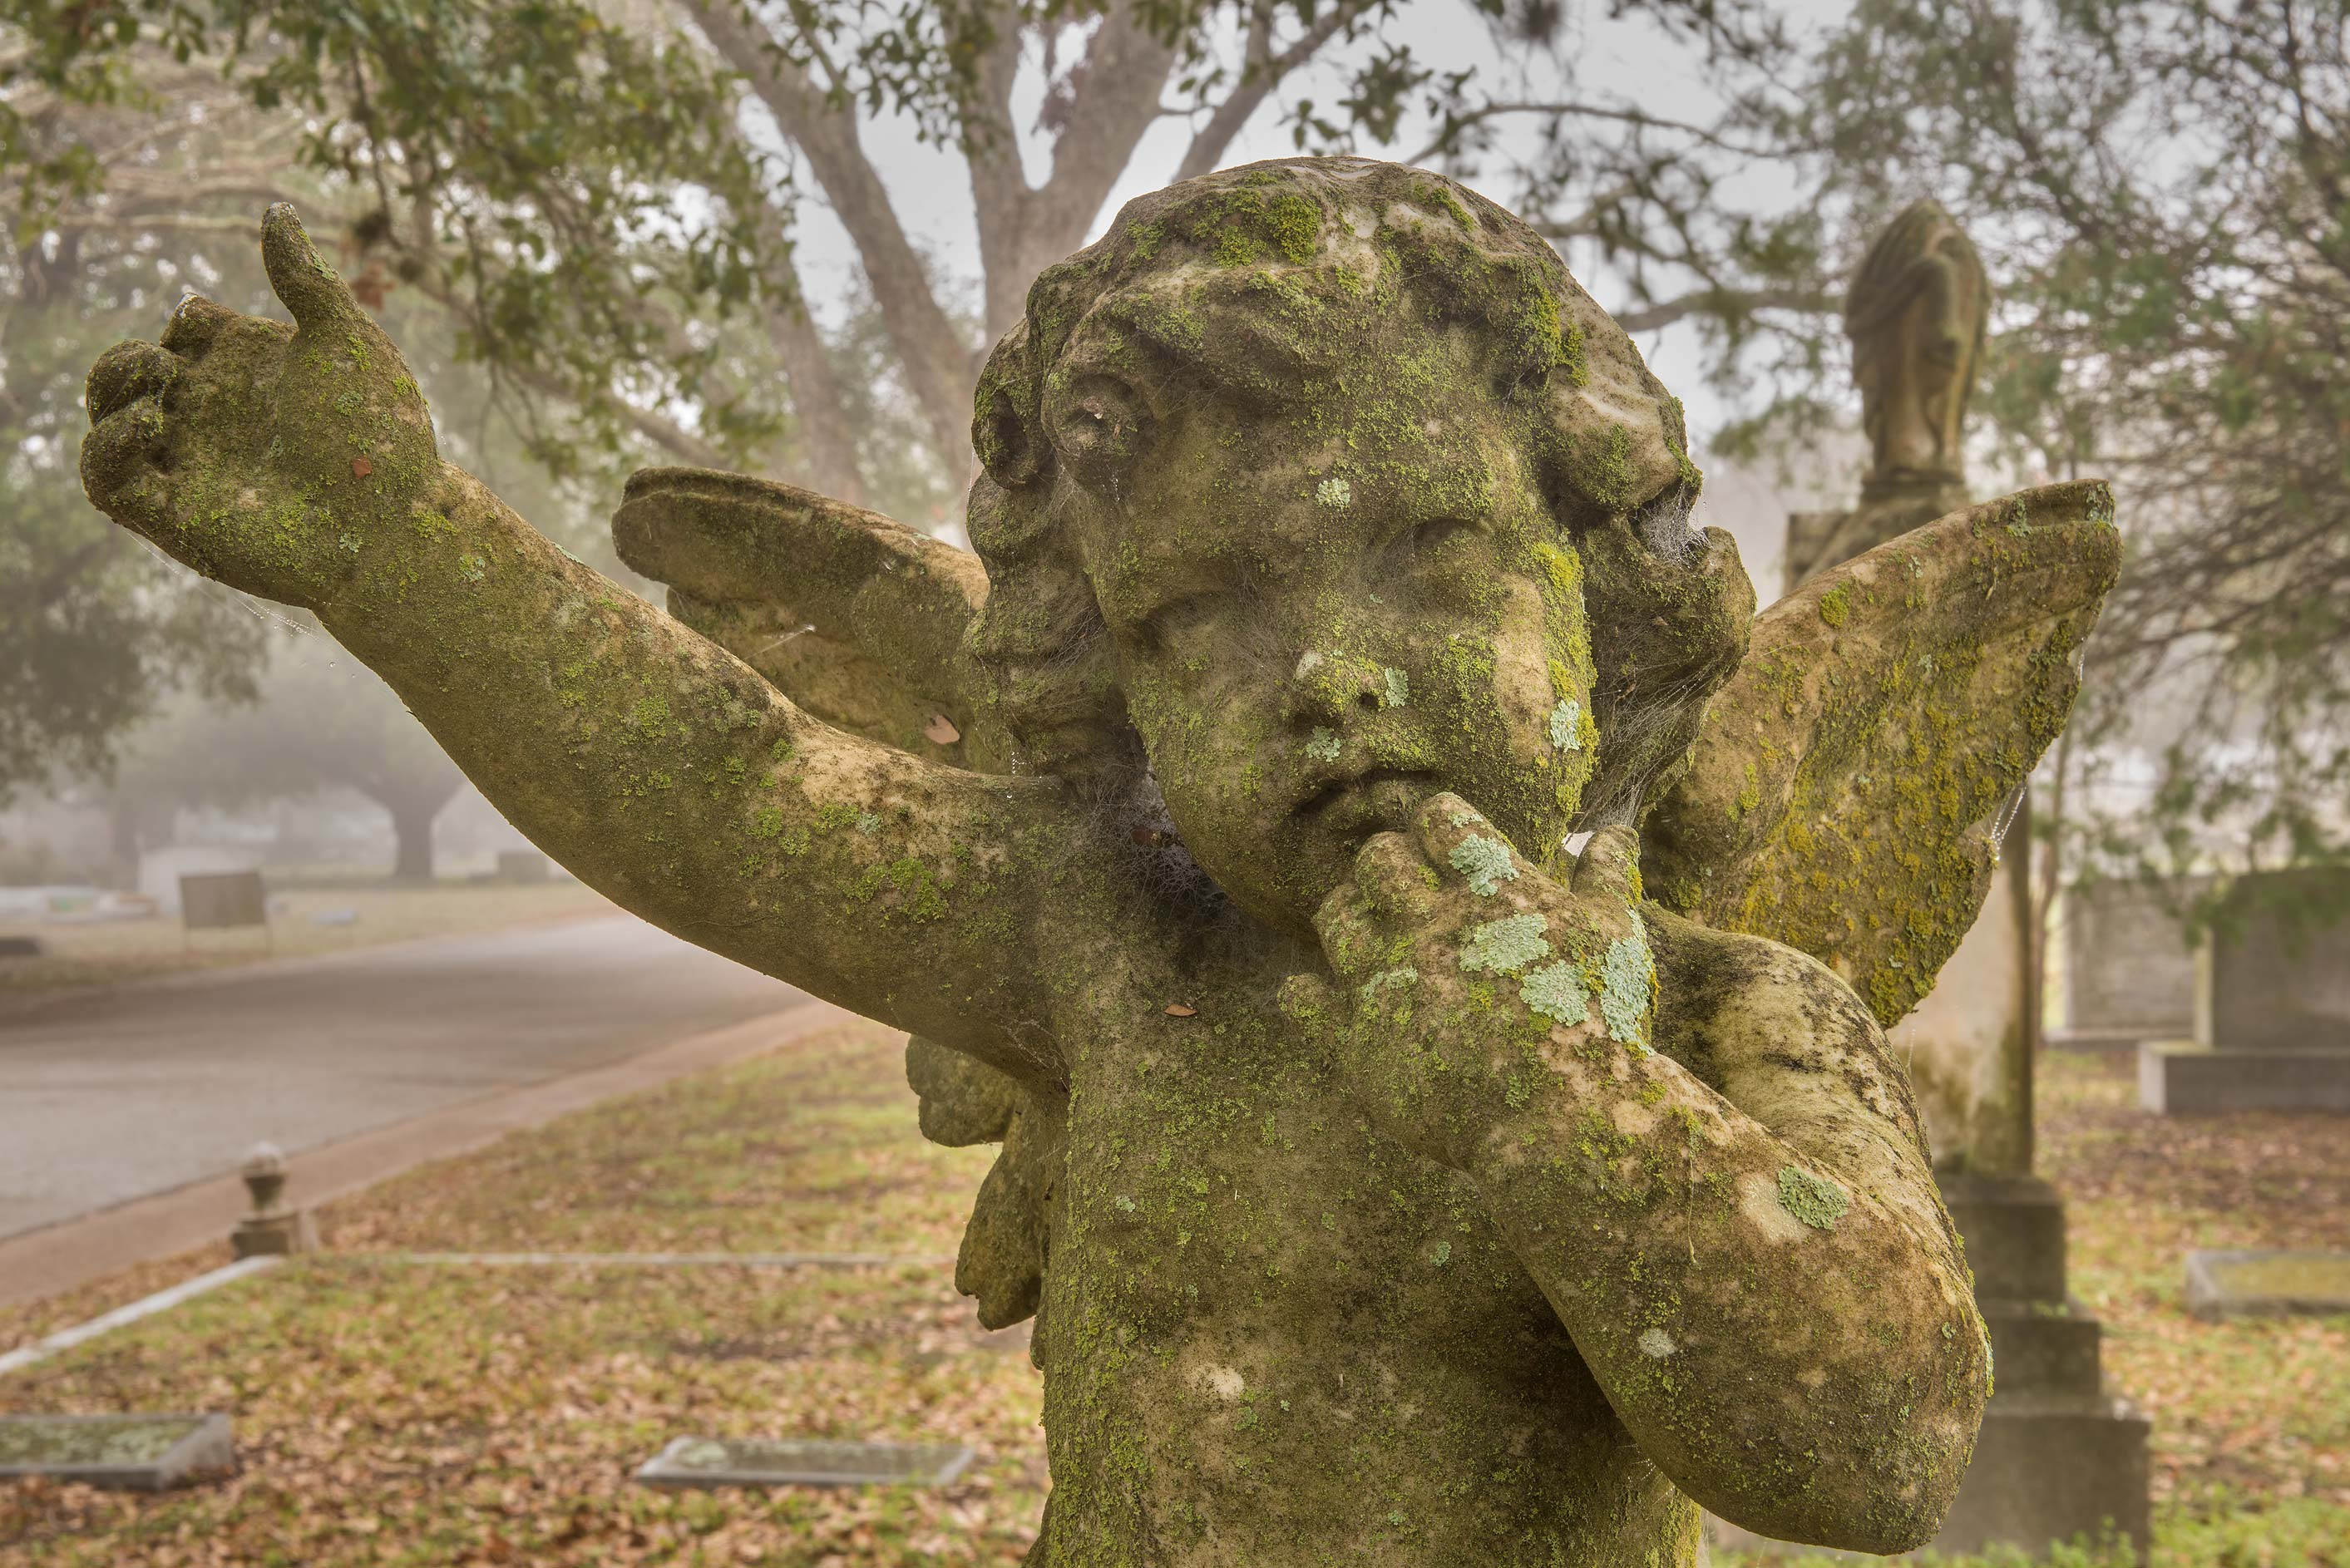 Mossy angel on a tomb in City Cemetery. Bryan, Texas